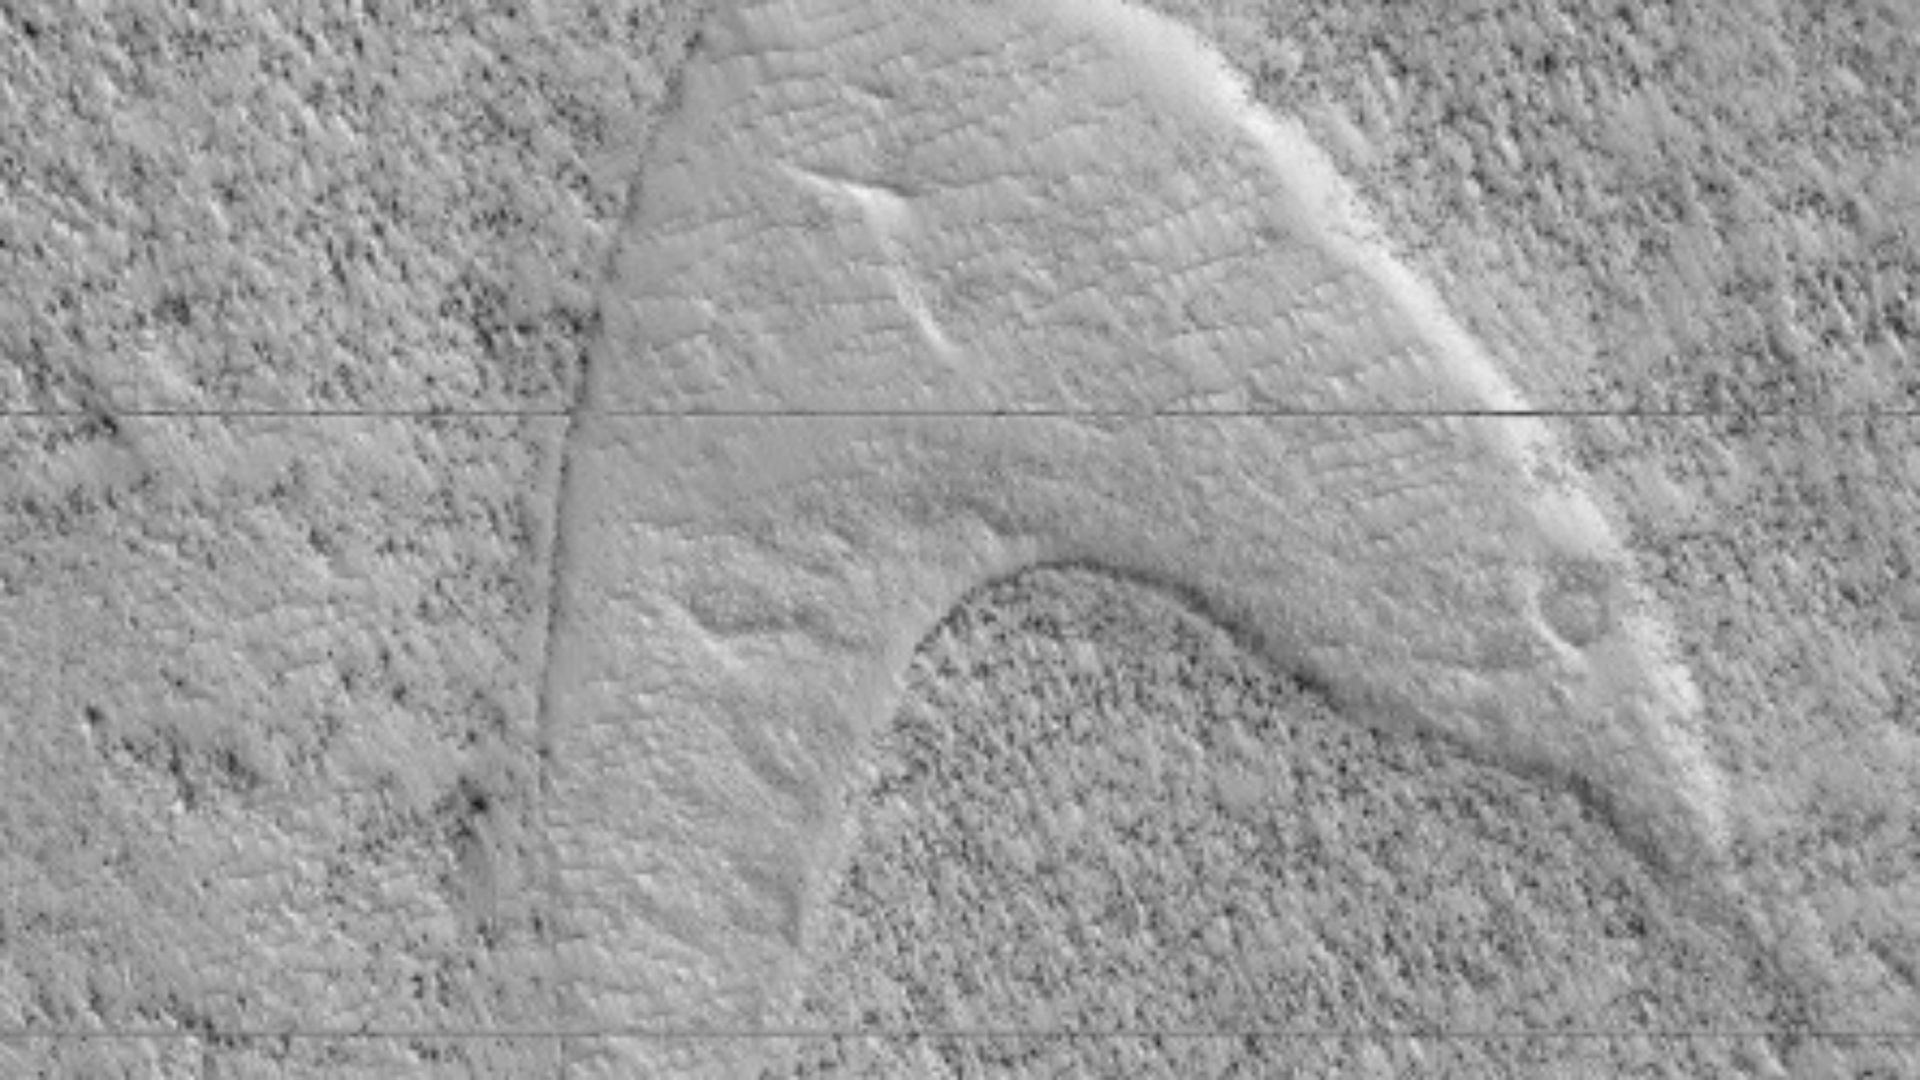 'Star Trek' Starfleet Logo Makes Appearance In New Mars Images